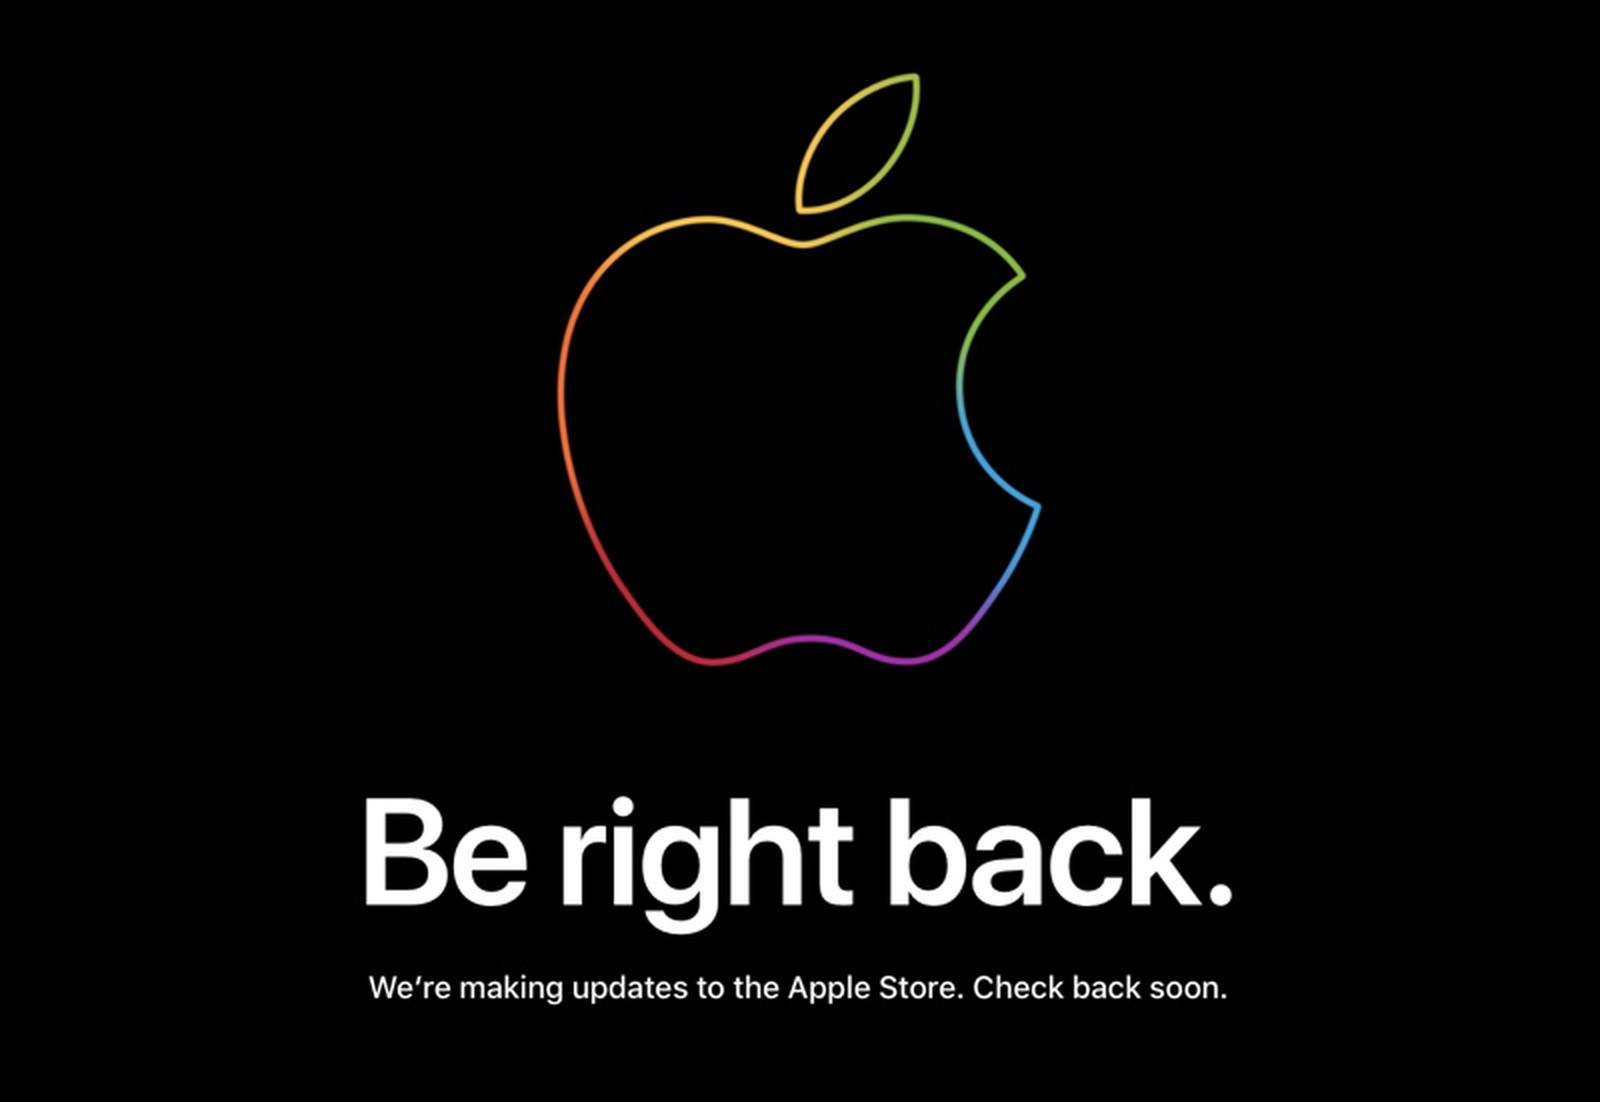 More Apple News for Fans: A Launch of Big Redesign of Its Online Store